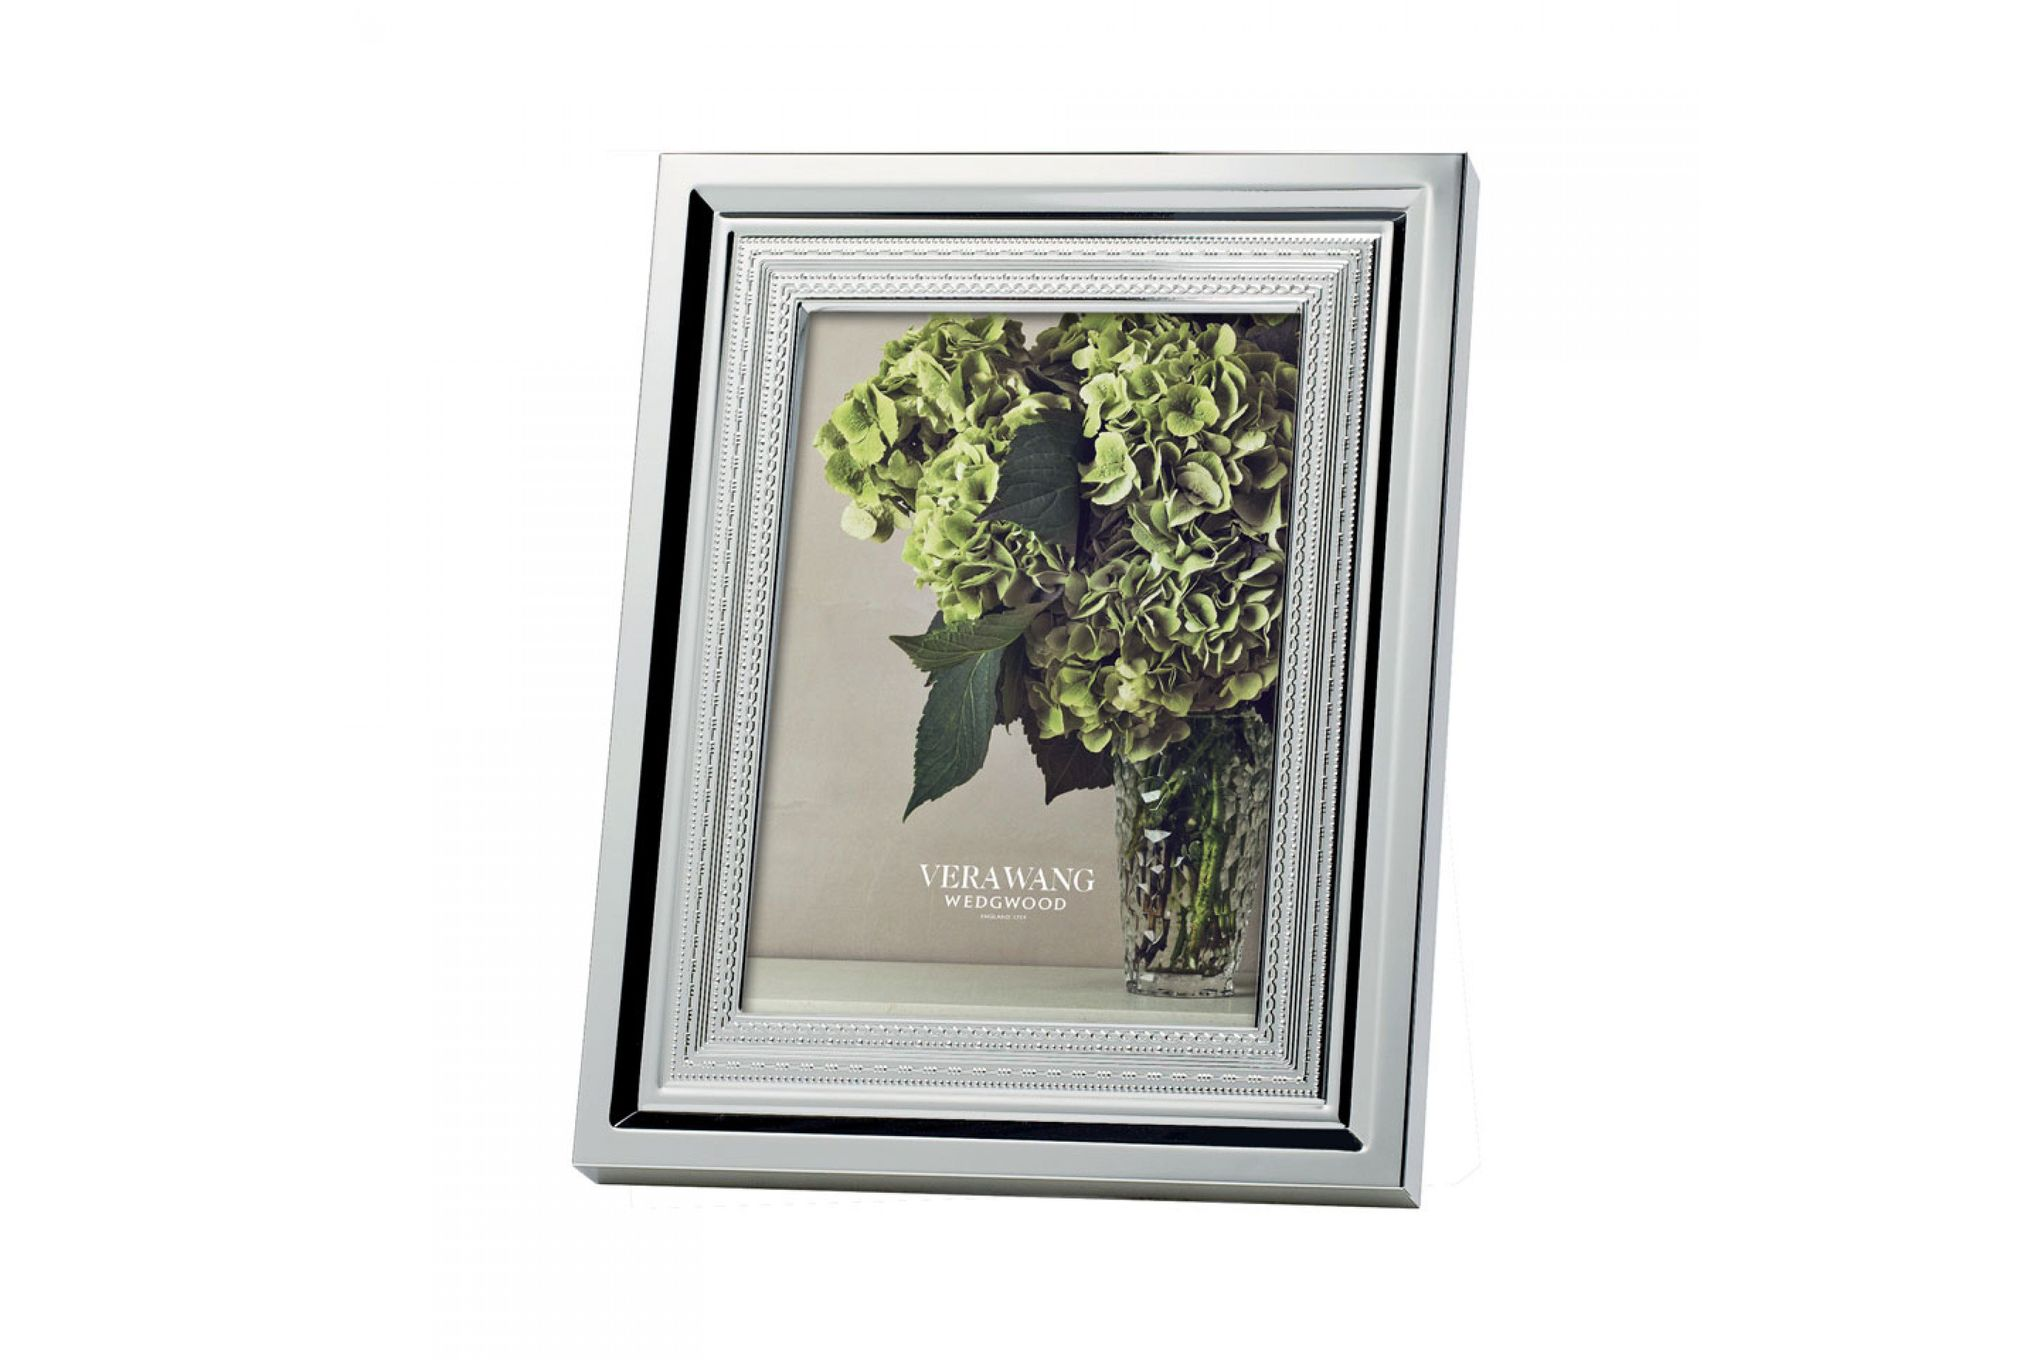 """Vera Wang for Wedgwood Gifts & Accessories Photo Frame With Love 4 x 6"""" thumb 1"""